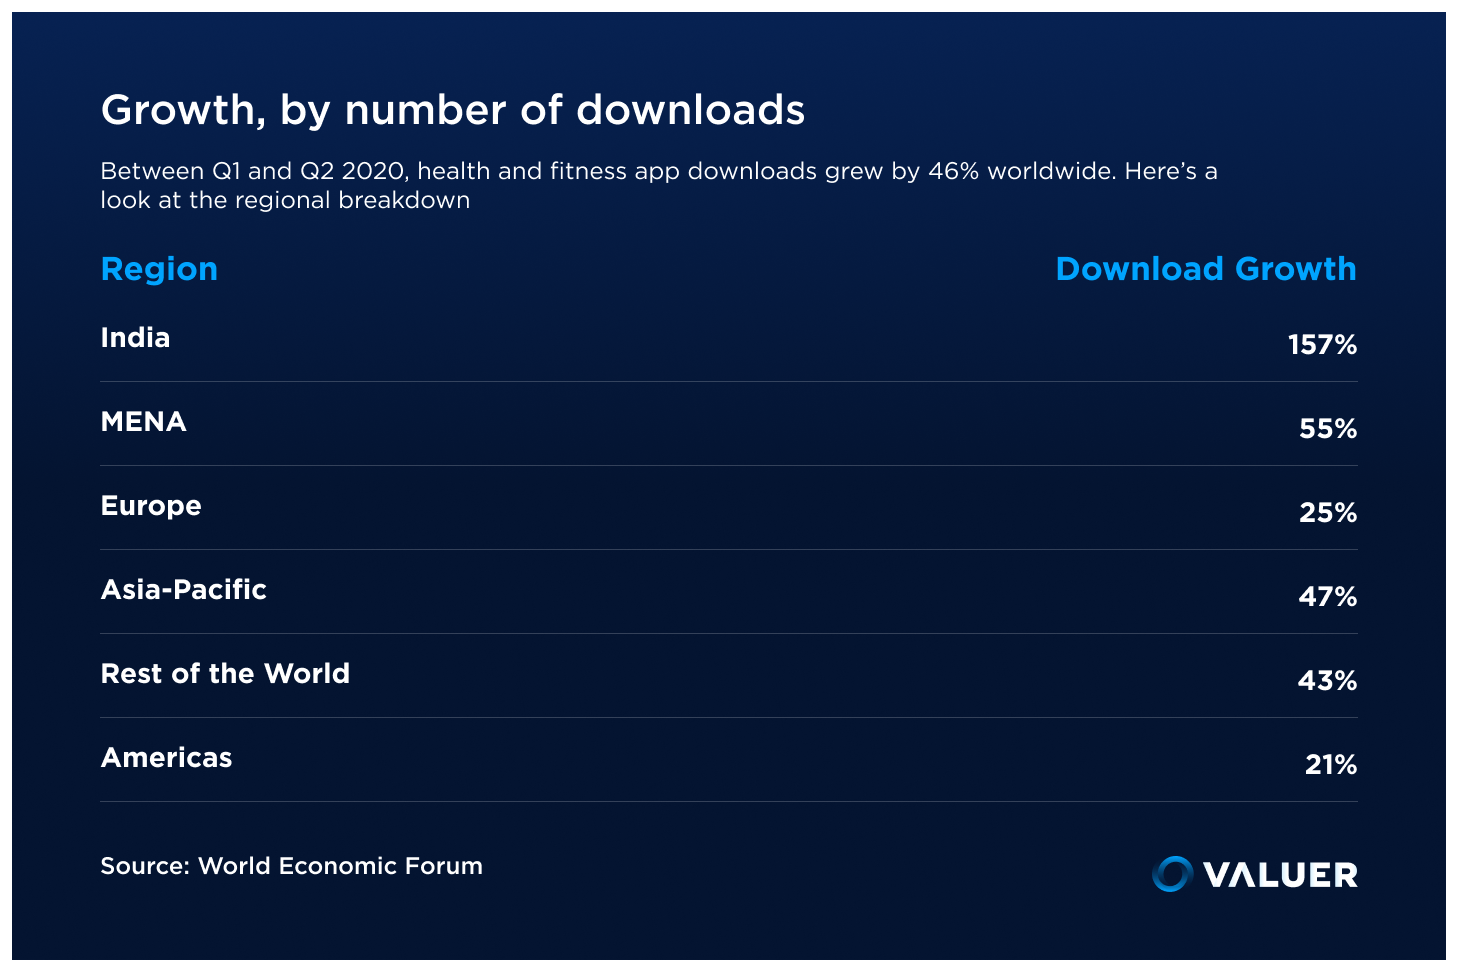 Growth of fitness app downloads between Q1 and Q2 during COVID-19 lockdown